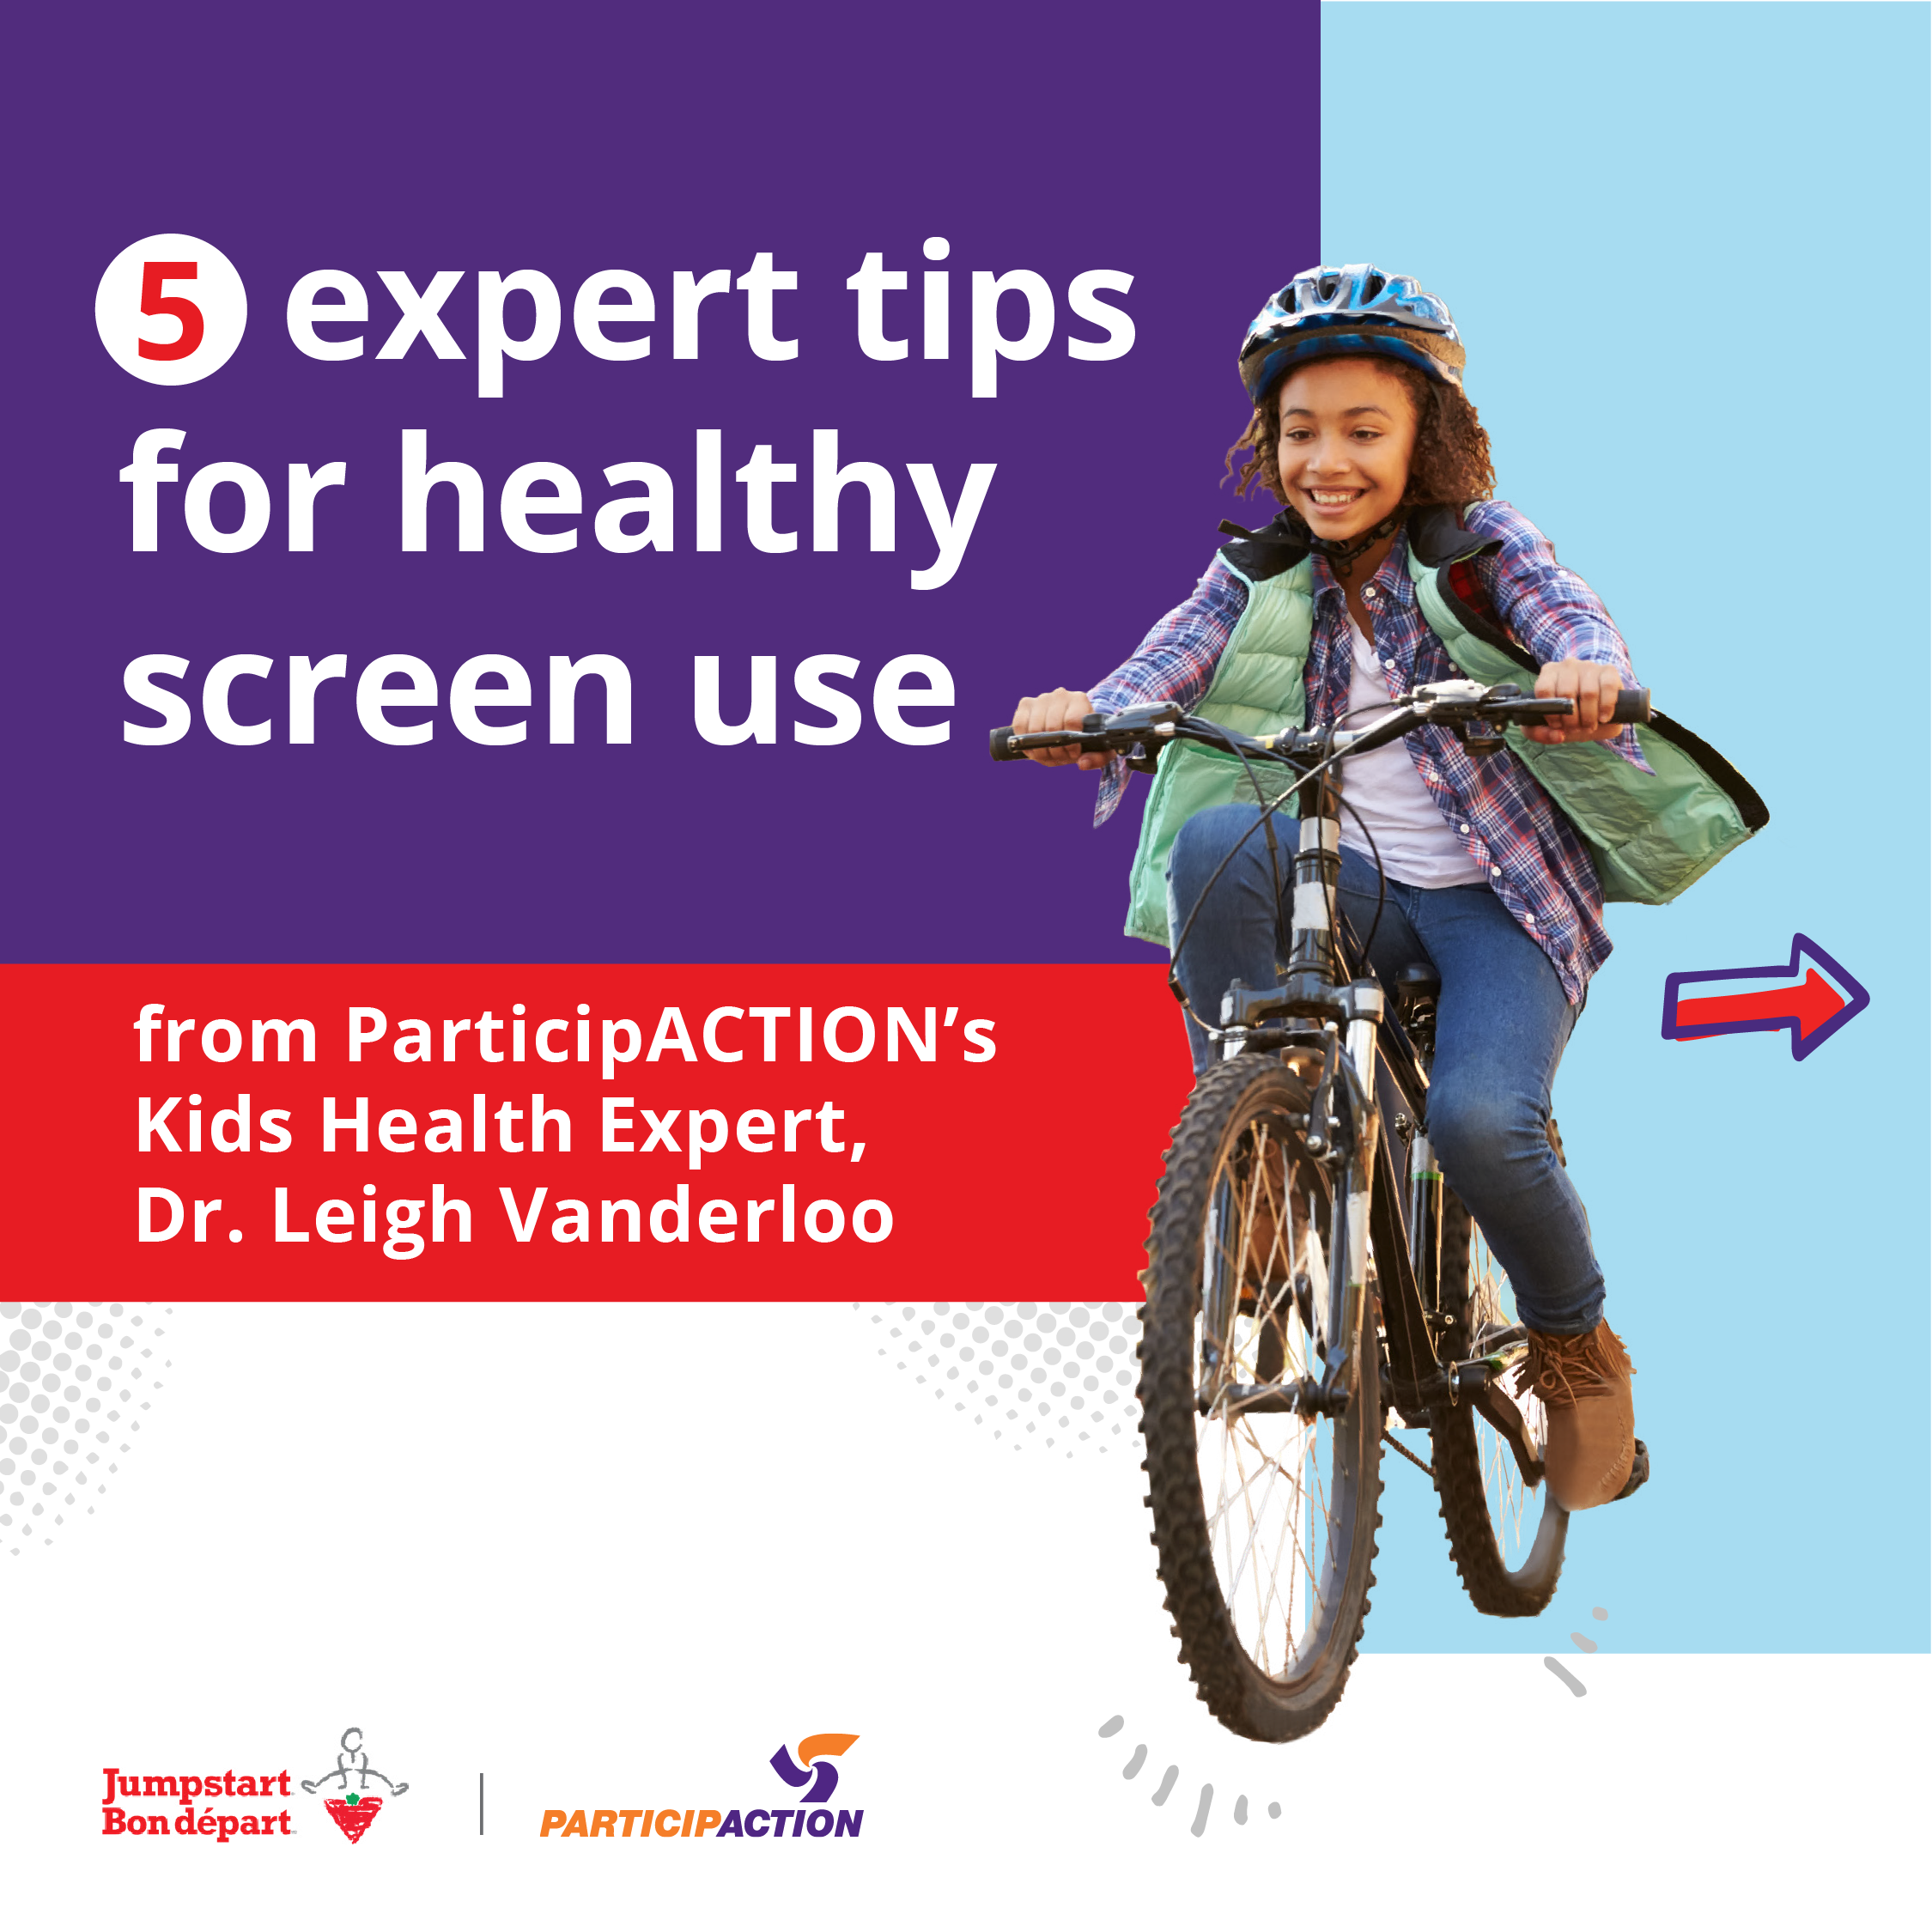 5 expert tips for healthy screen use from ParticipACTION's Kids Health Expert, Dr. Leigh Vanderloo